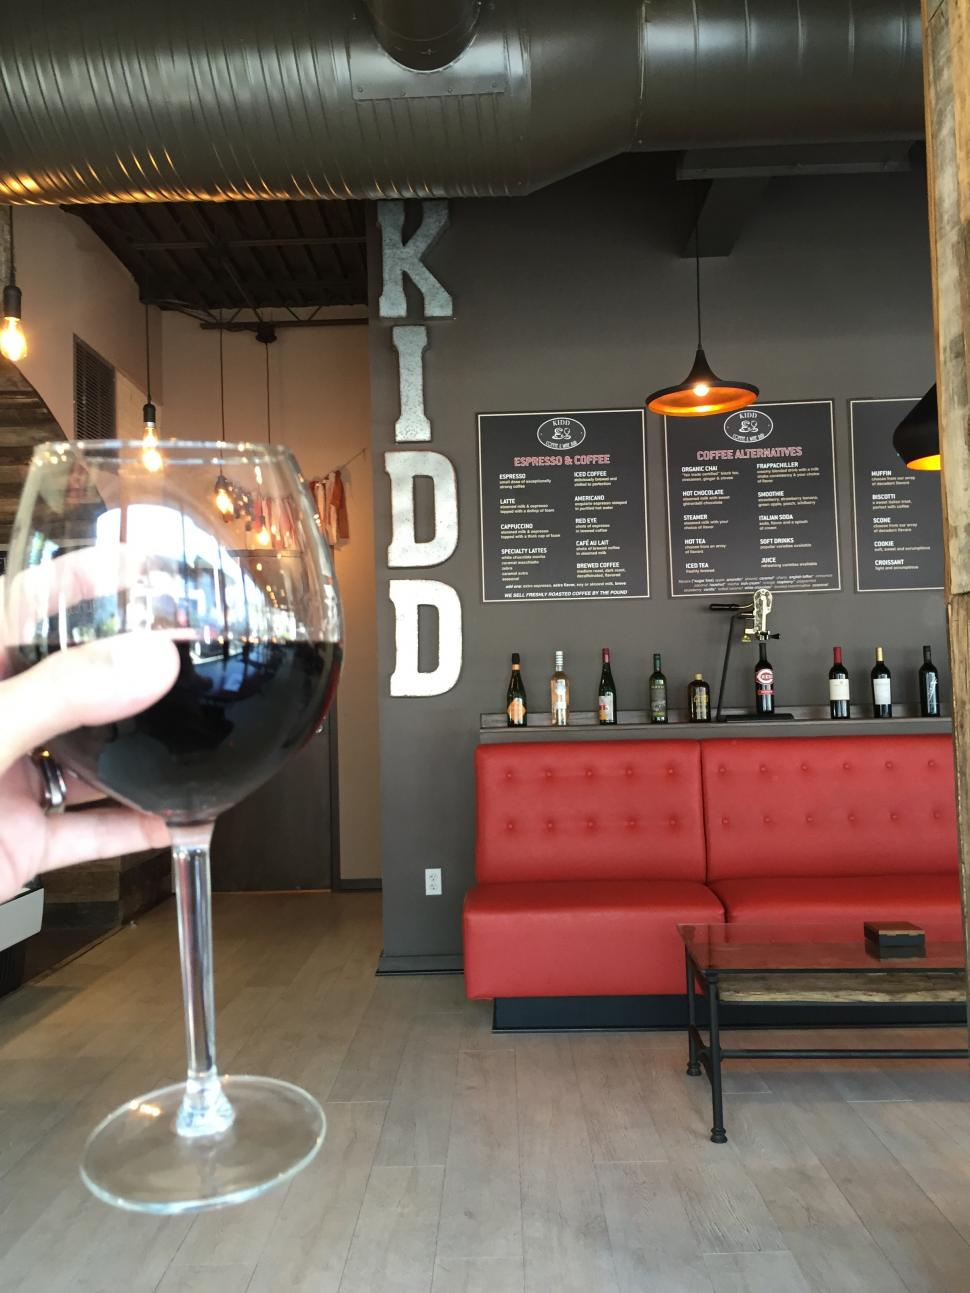 Kidd Coffee and Wine Bar (photo: Erin Woiteshek)